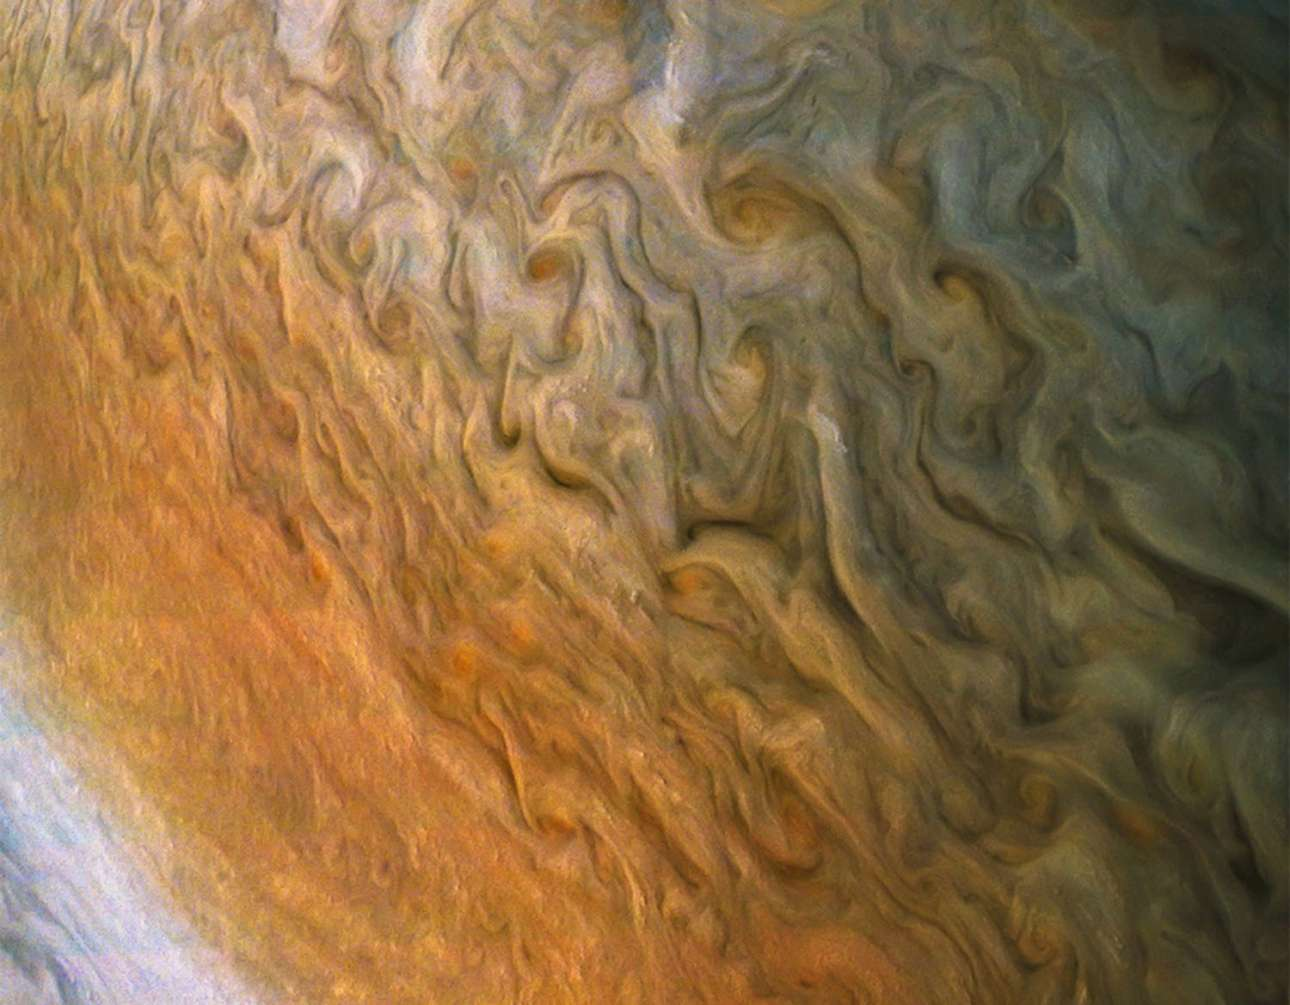 jupiter-NASA photos (16)